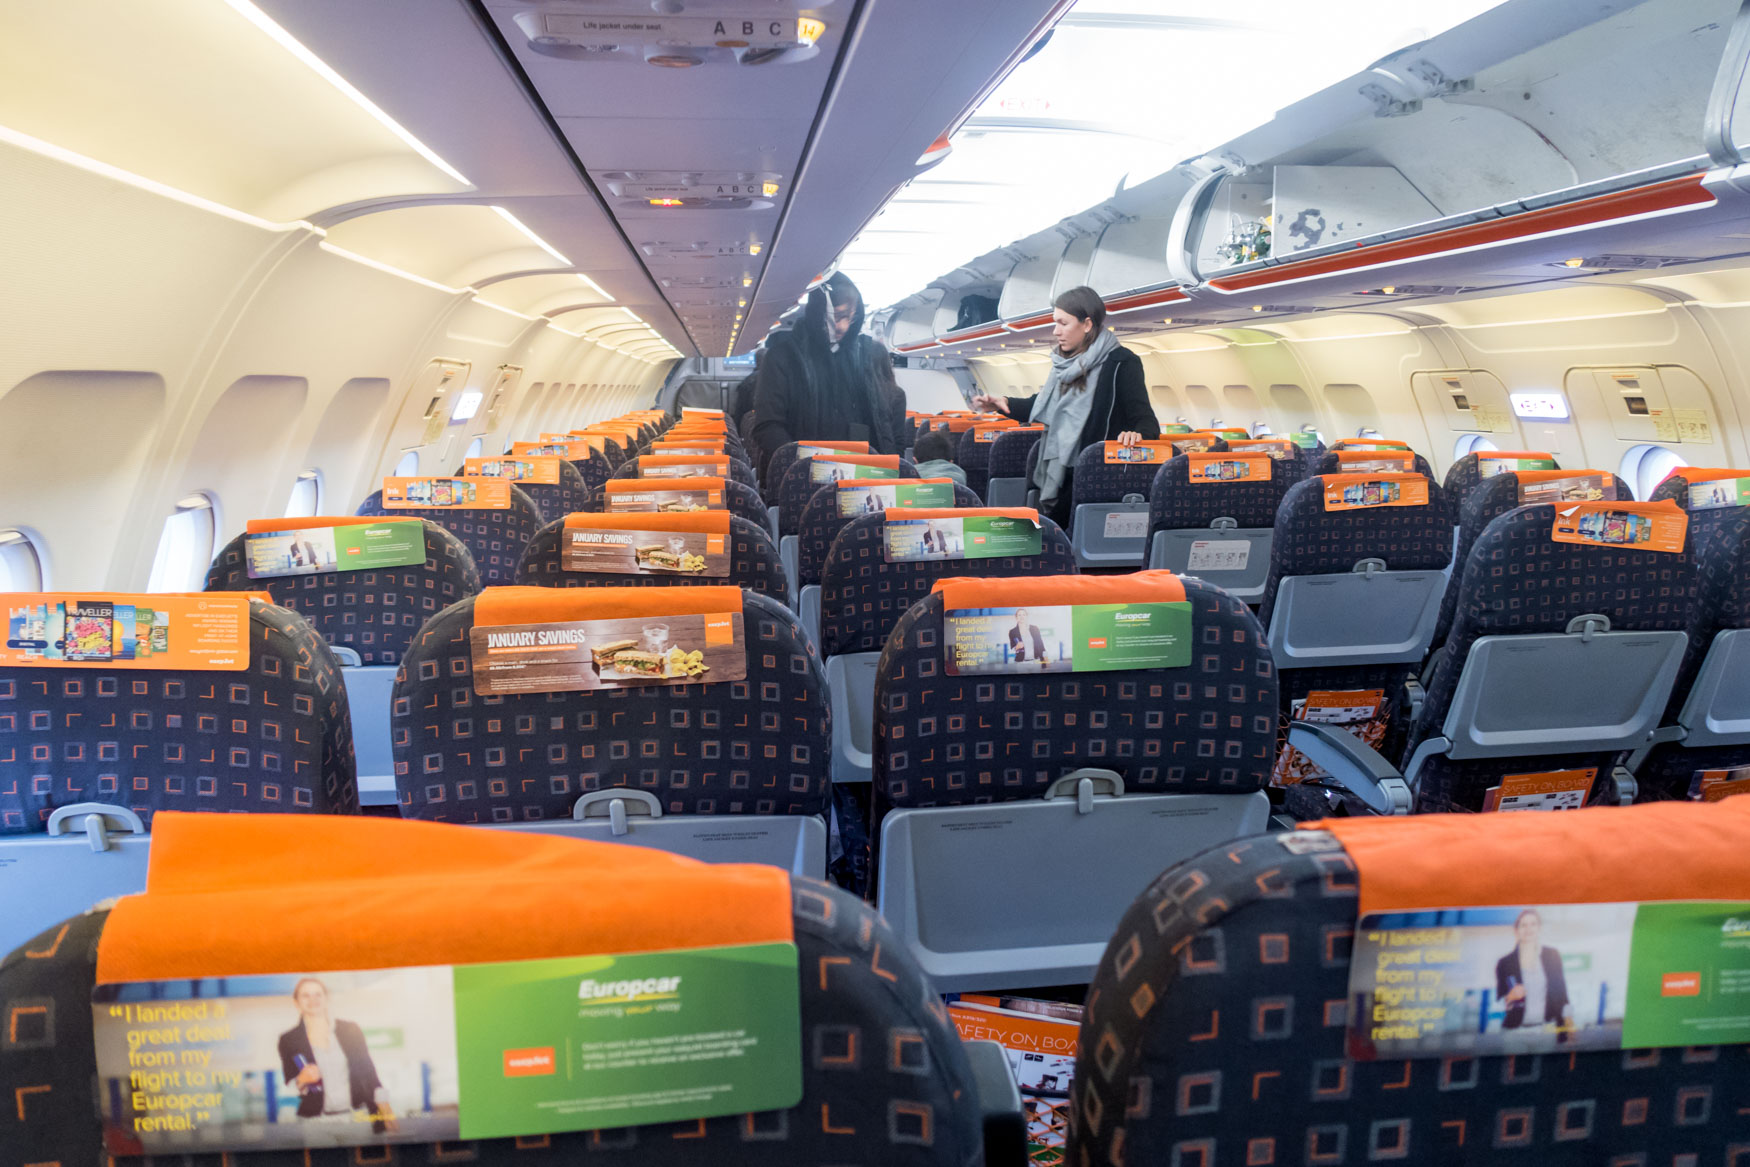 easyJet Airbus A319 Cabin